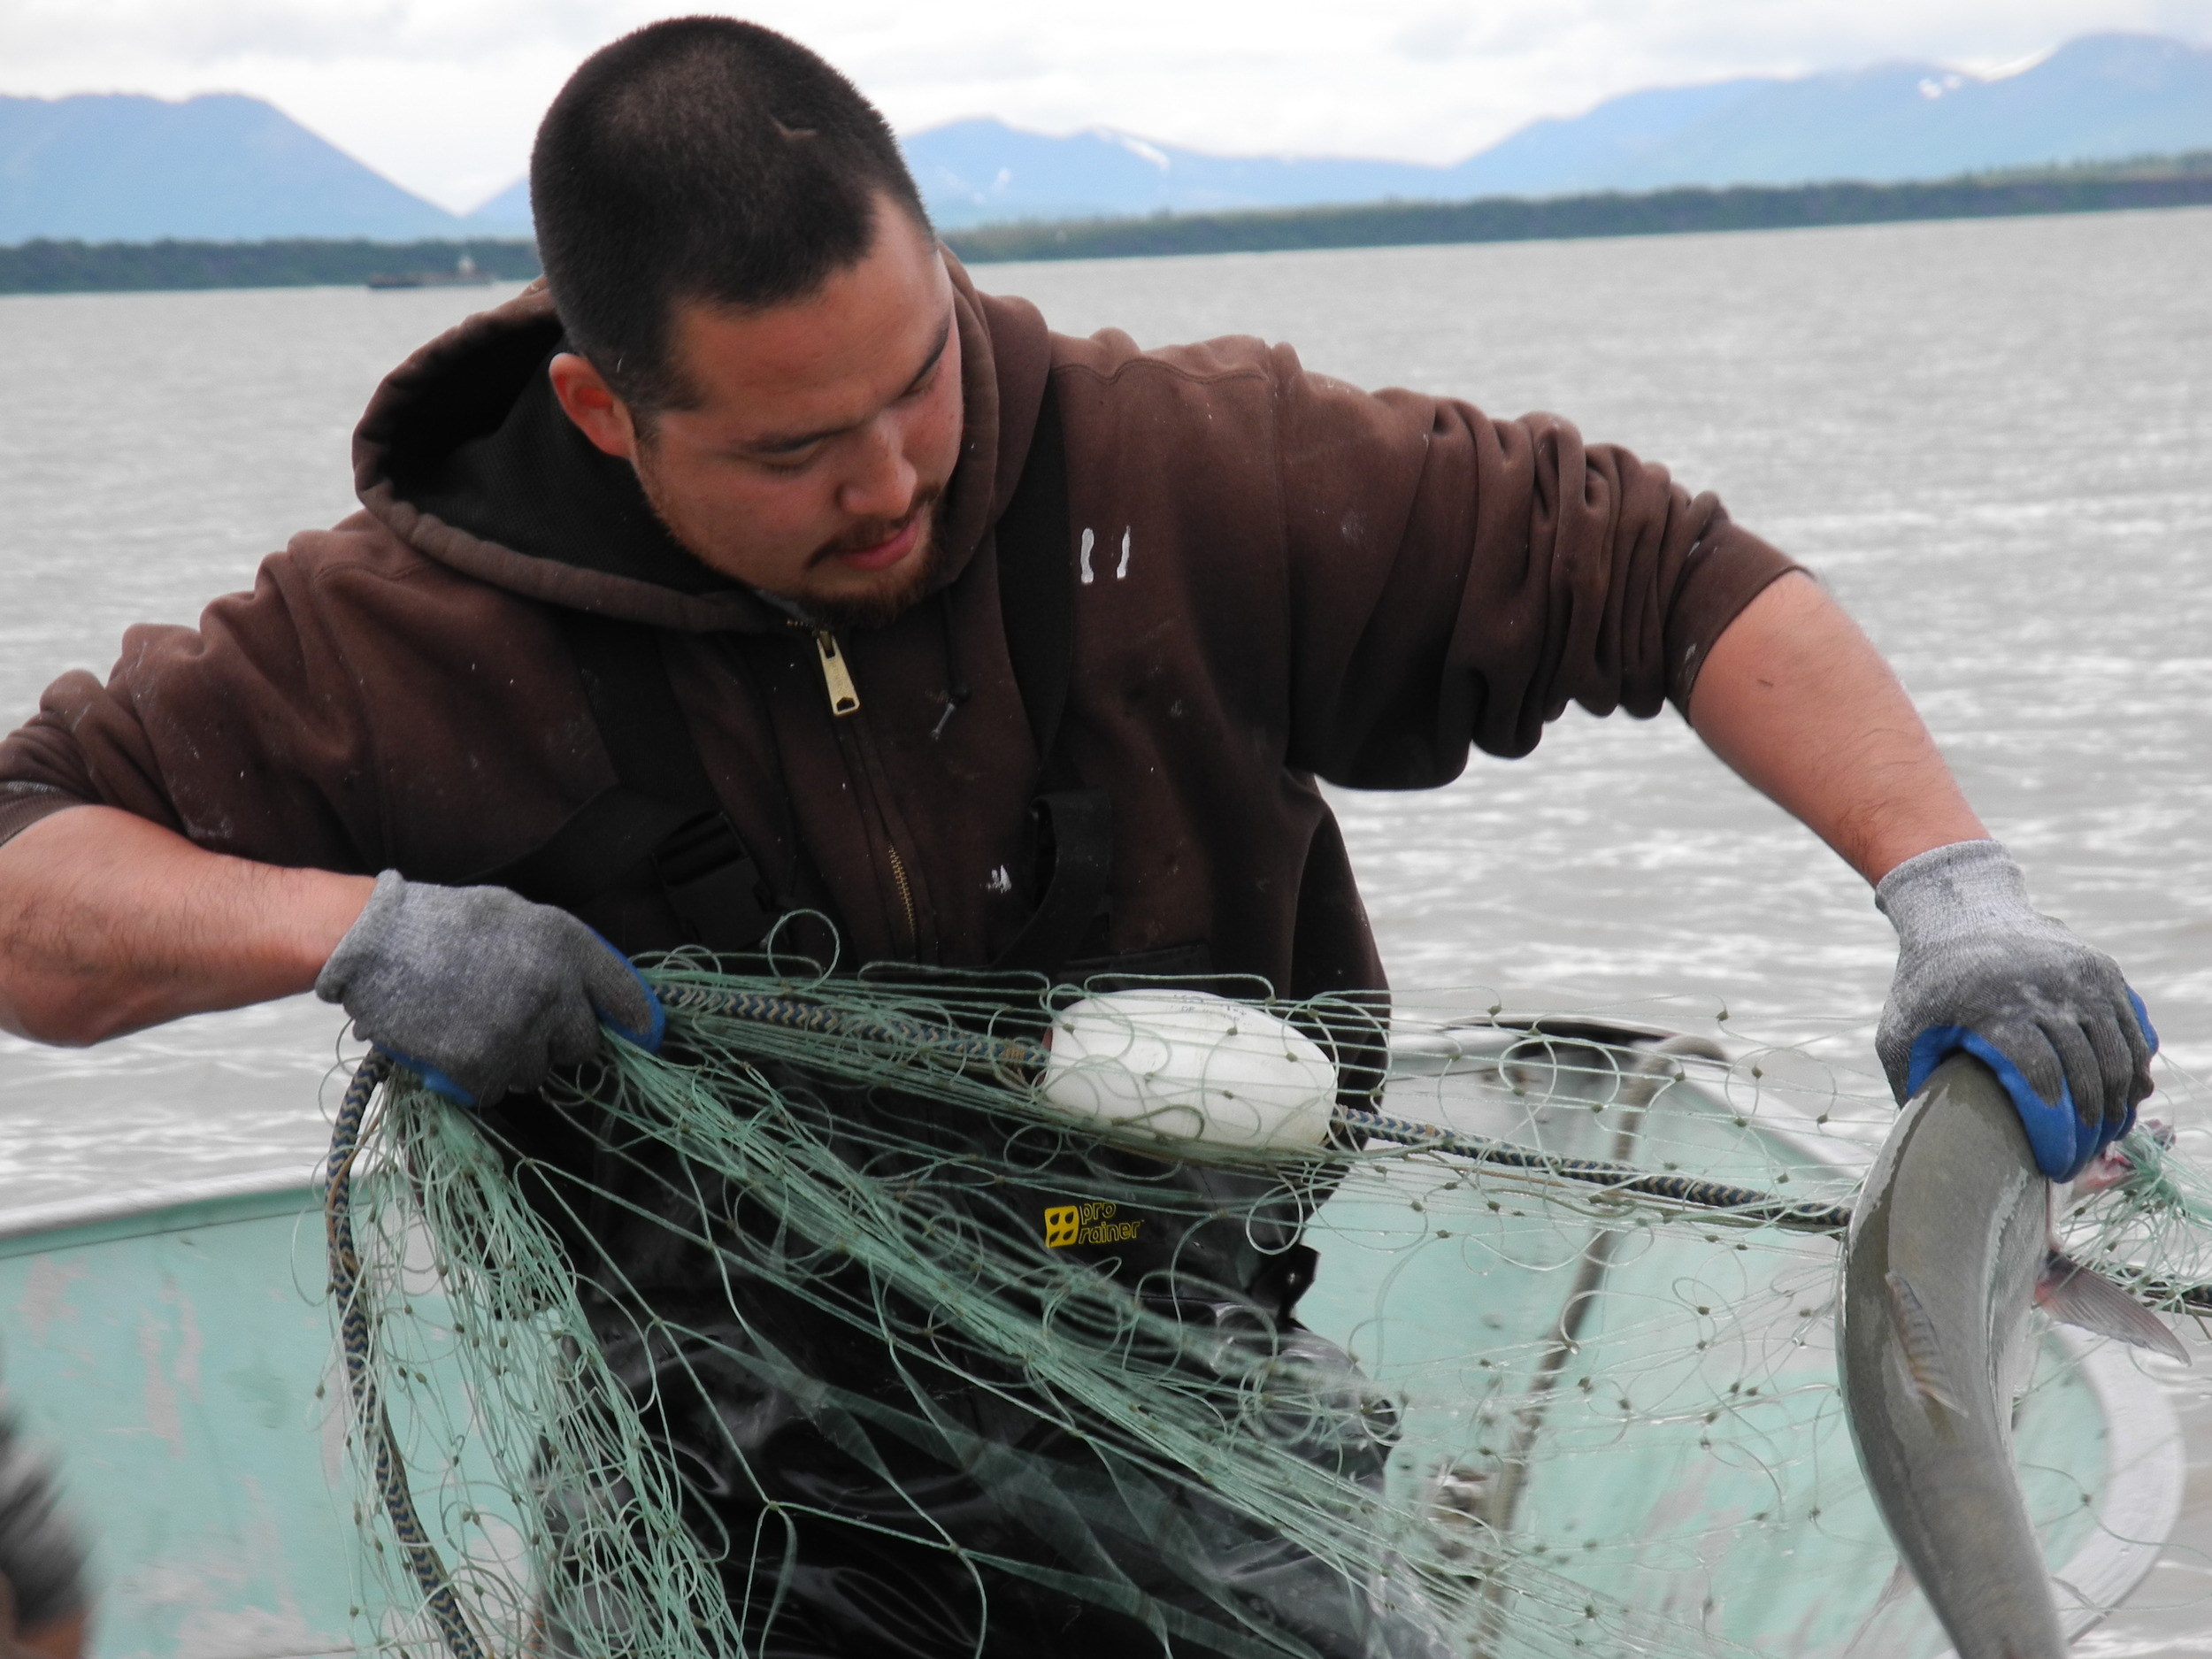 Pulling salmon from the net